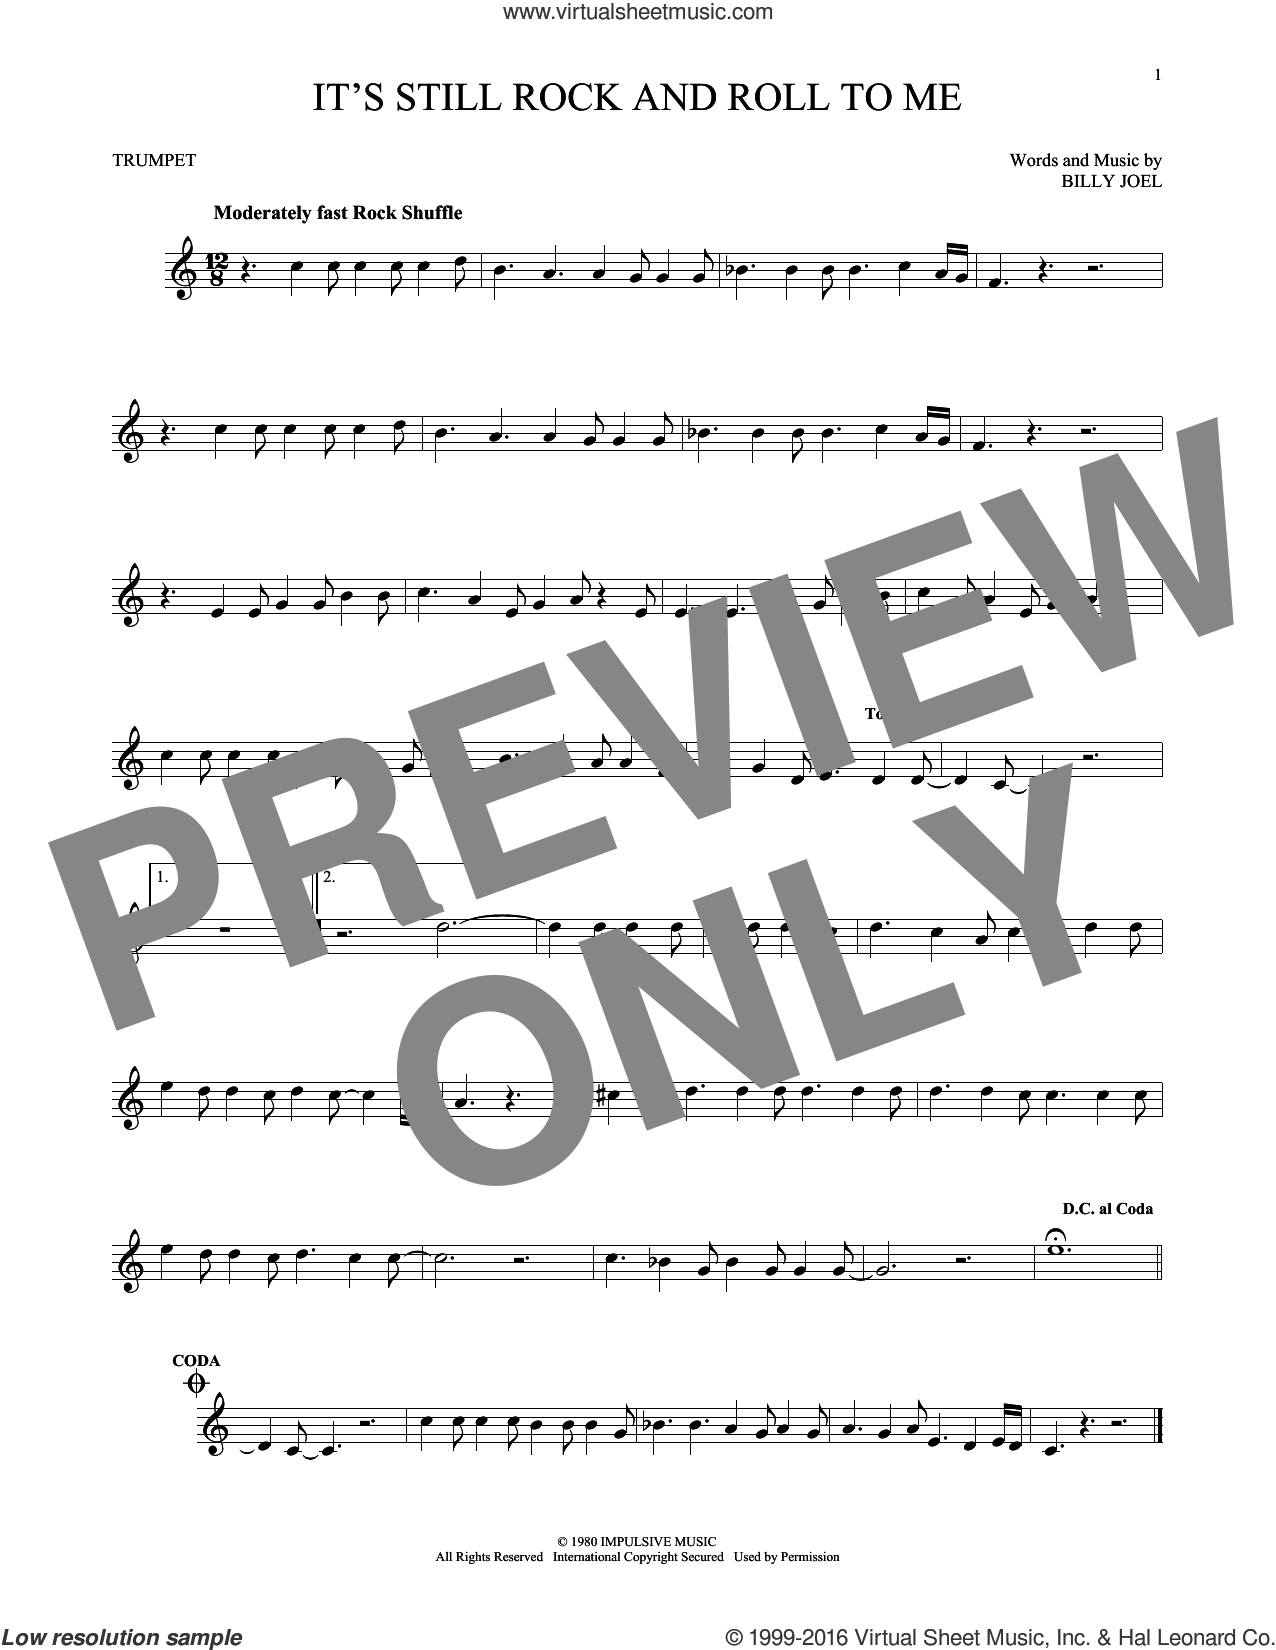 It's Still Rock And Roll To Me sheet music for trumpet solo by Billy Joel, intermediate